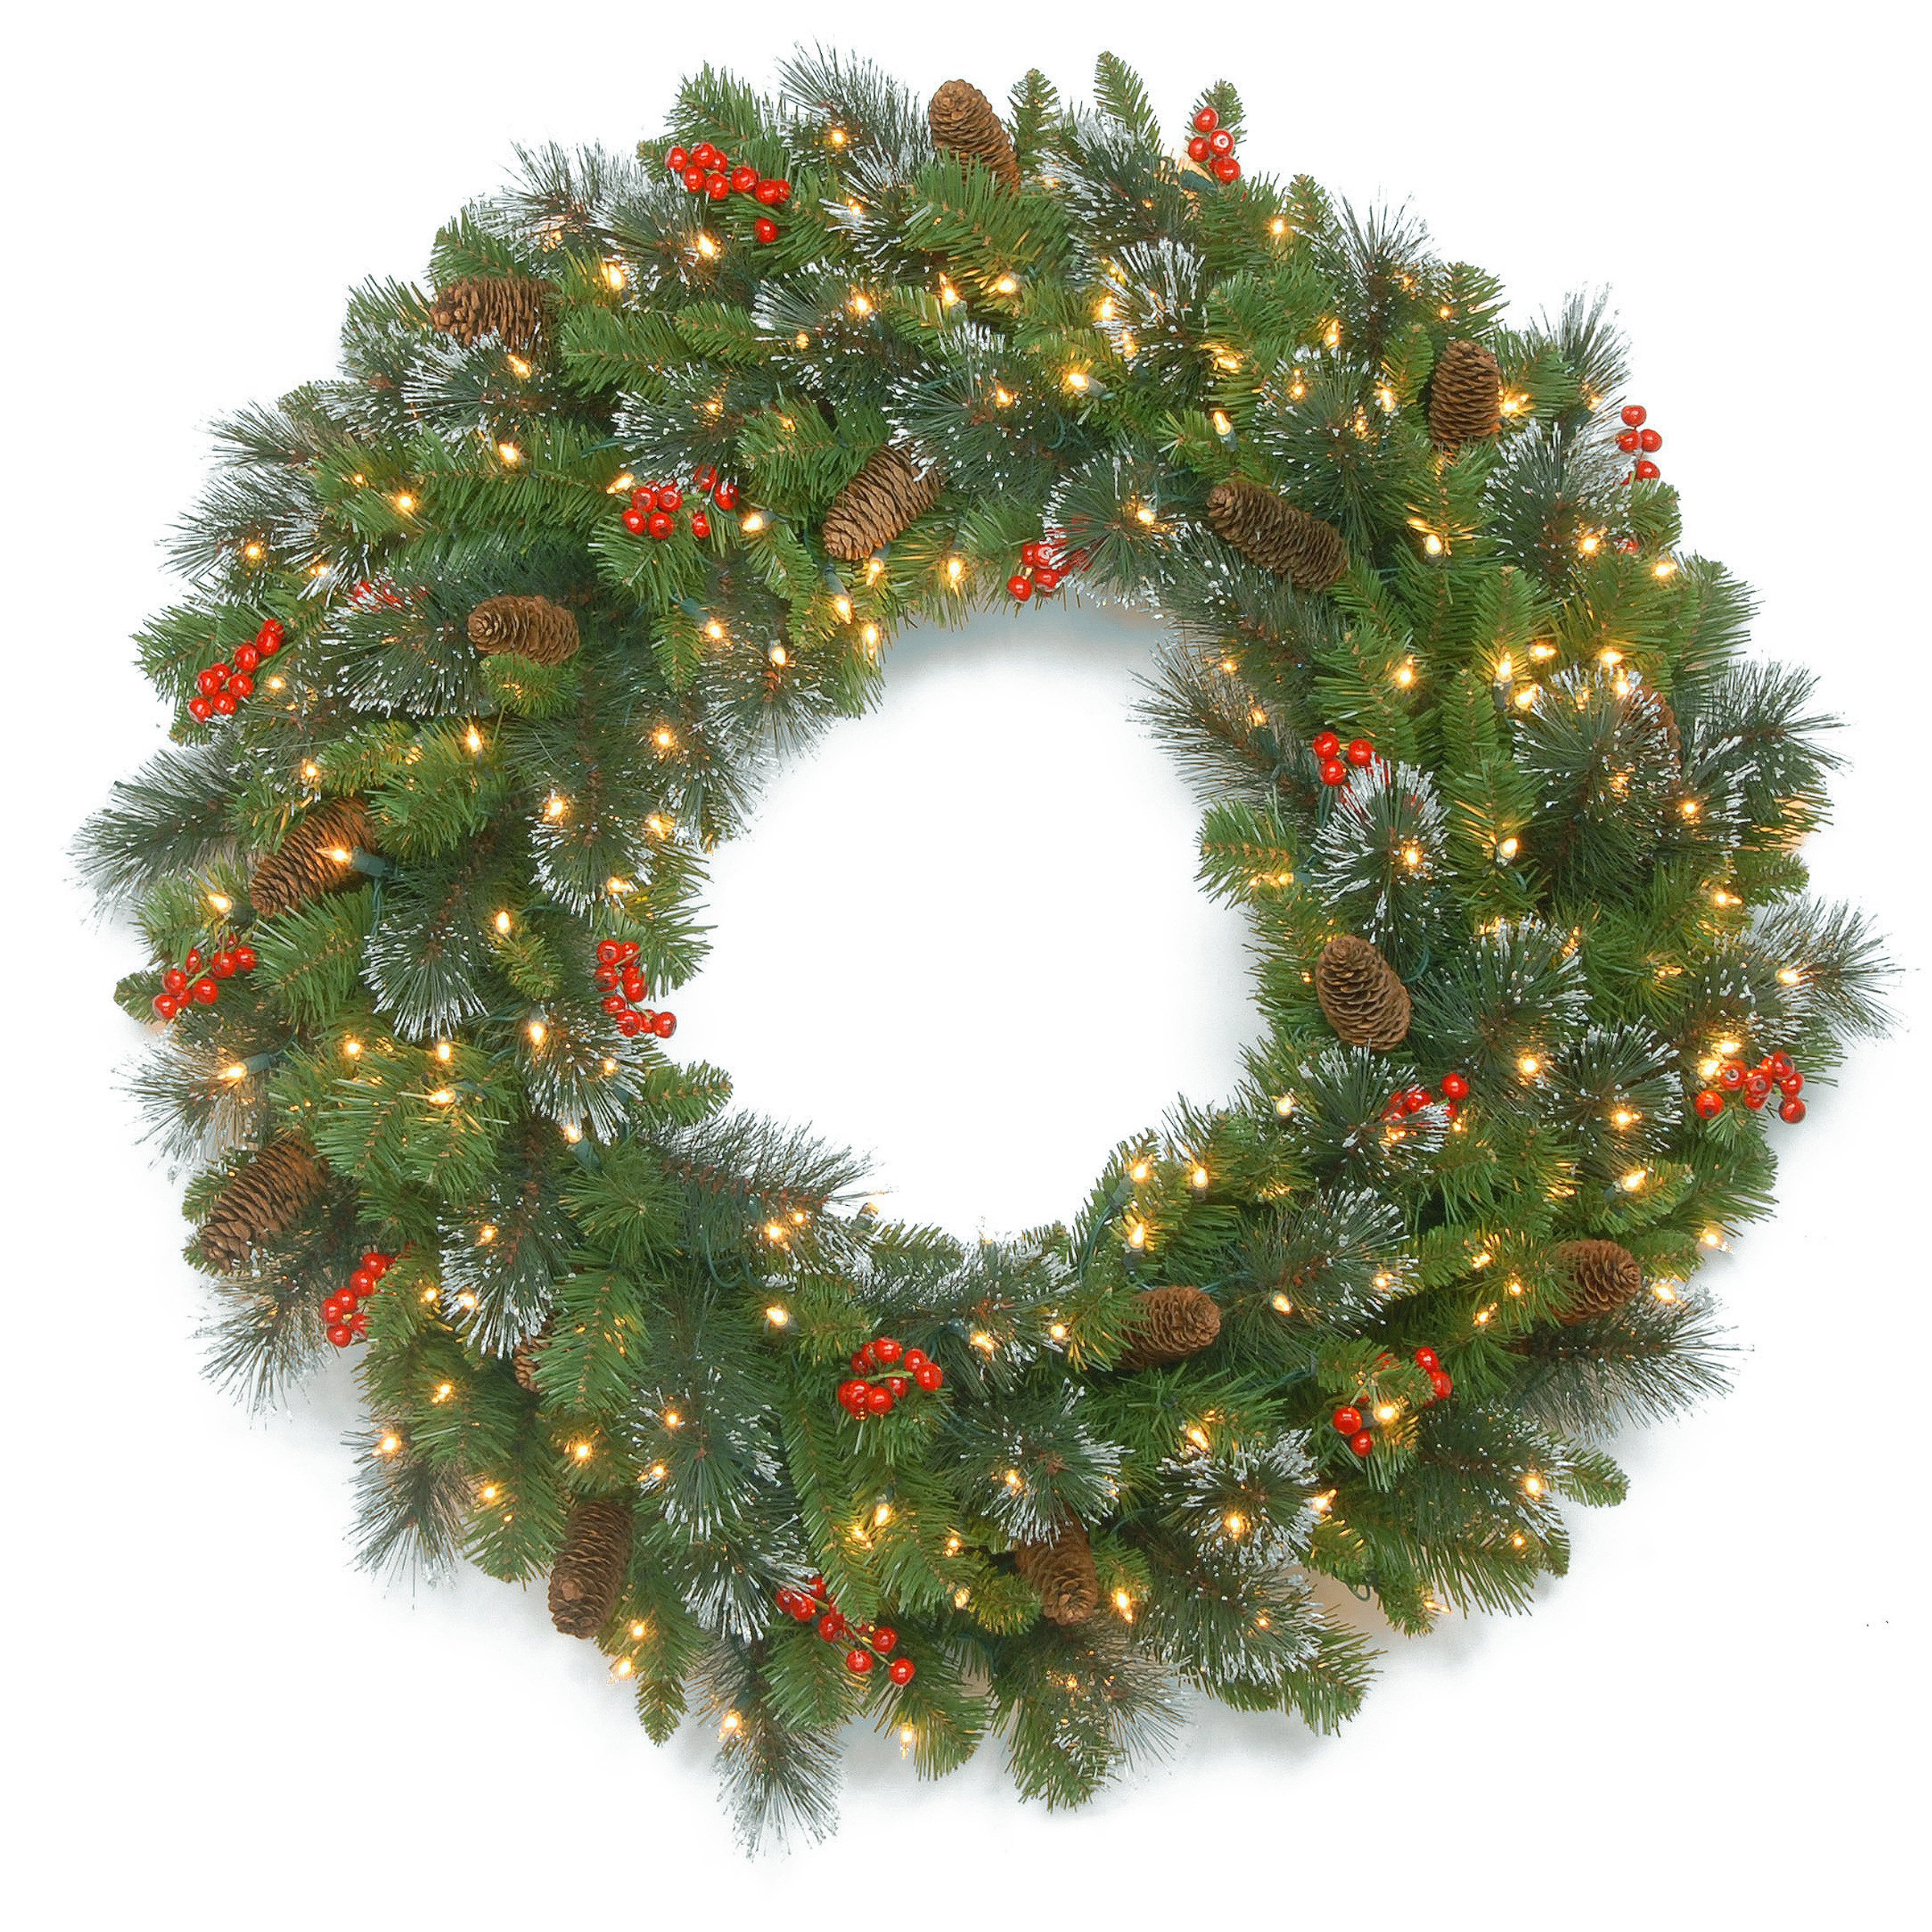 National Tree 30 Inch Crestwood Spruce Wreath with Silver Bristles, Cones, Red Berries and 70 Battery Operated Warm White LED Lights with Timer (CW7-306-30WBC1)